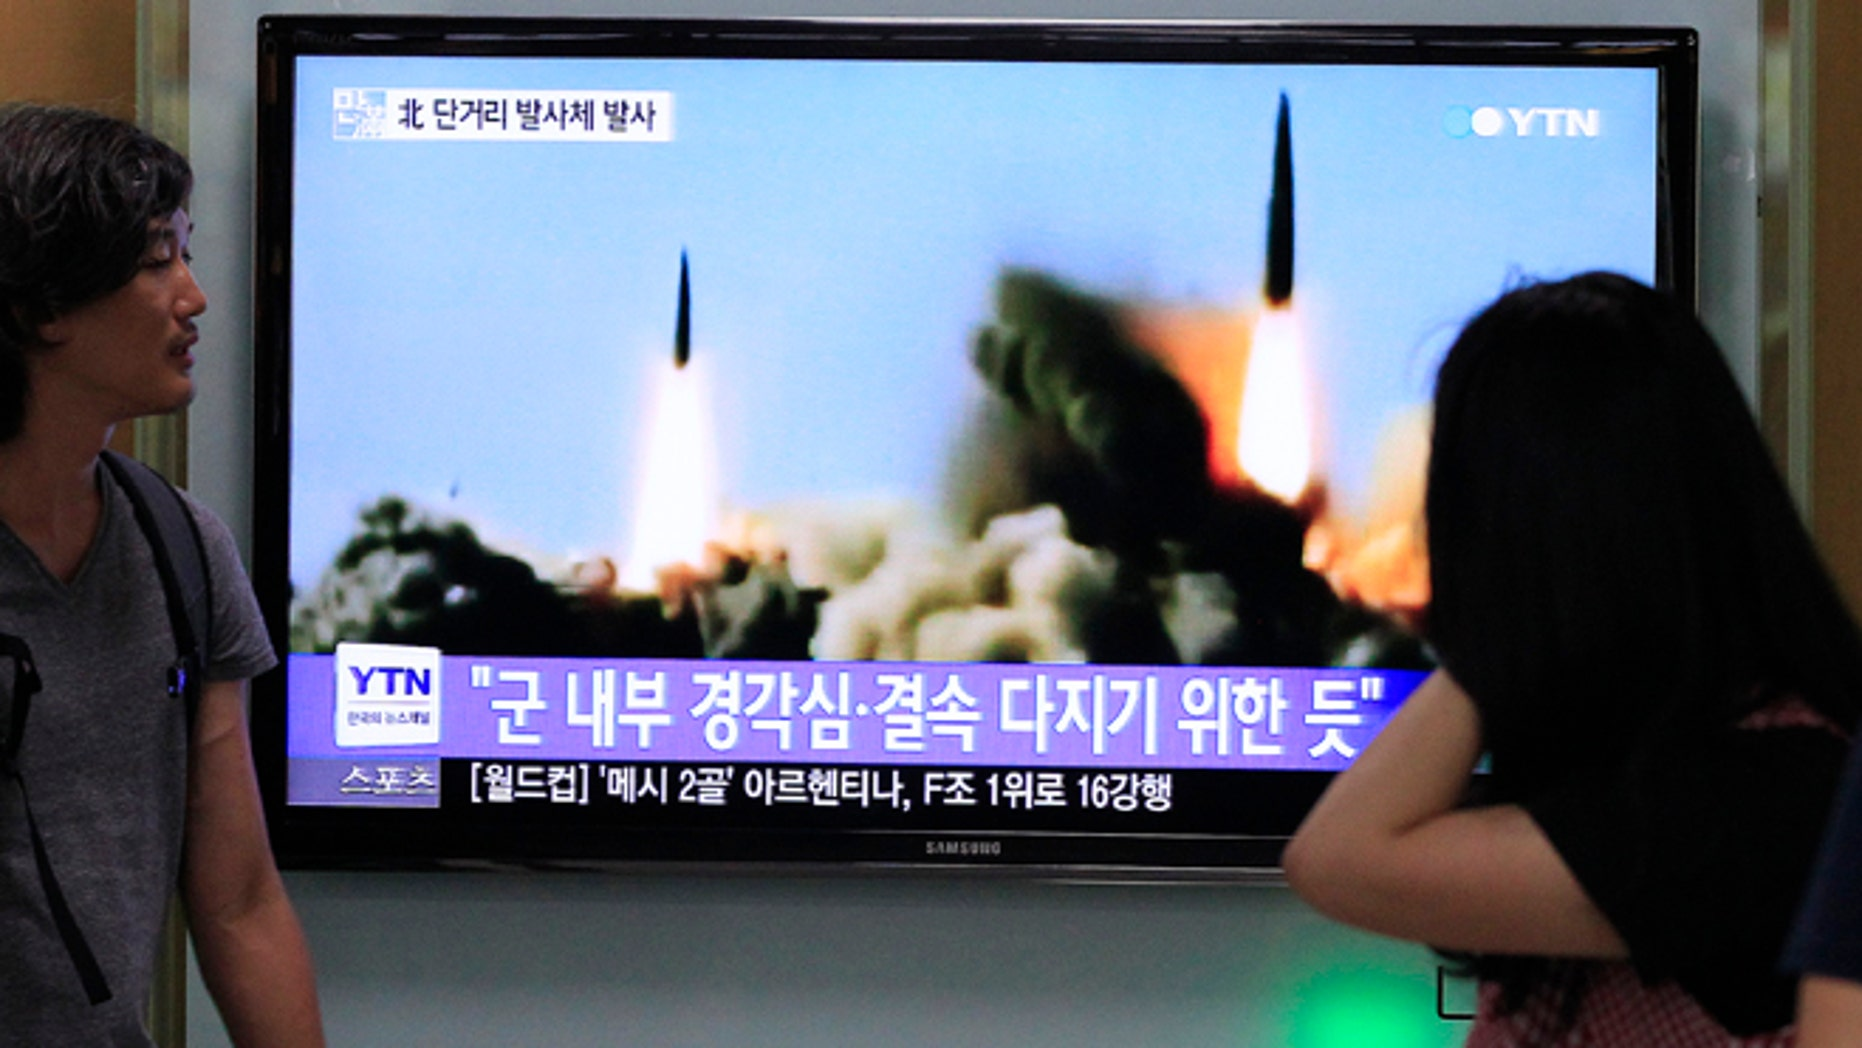 June 26, 2014: People watch a TV news program showing the missile launch conducted by North Korea, at Seoul Railway Station in Seoul, South Korea.